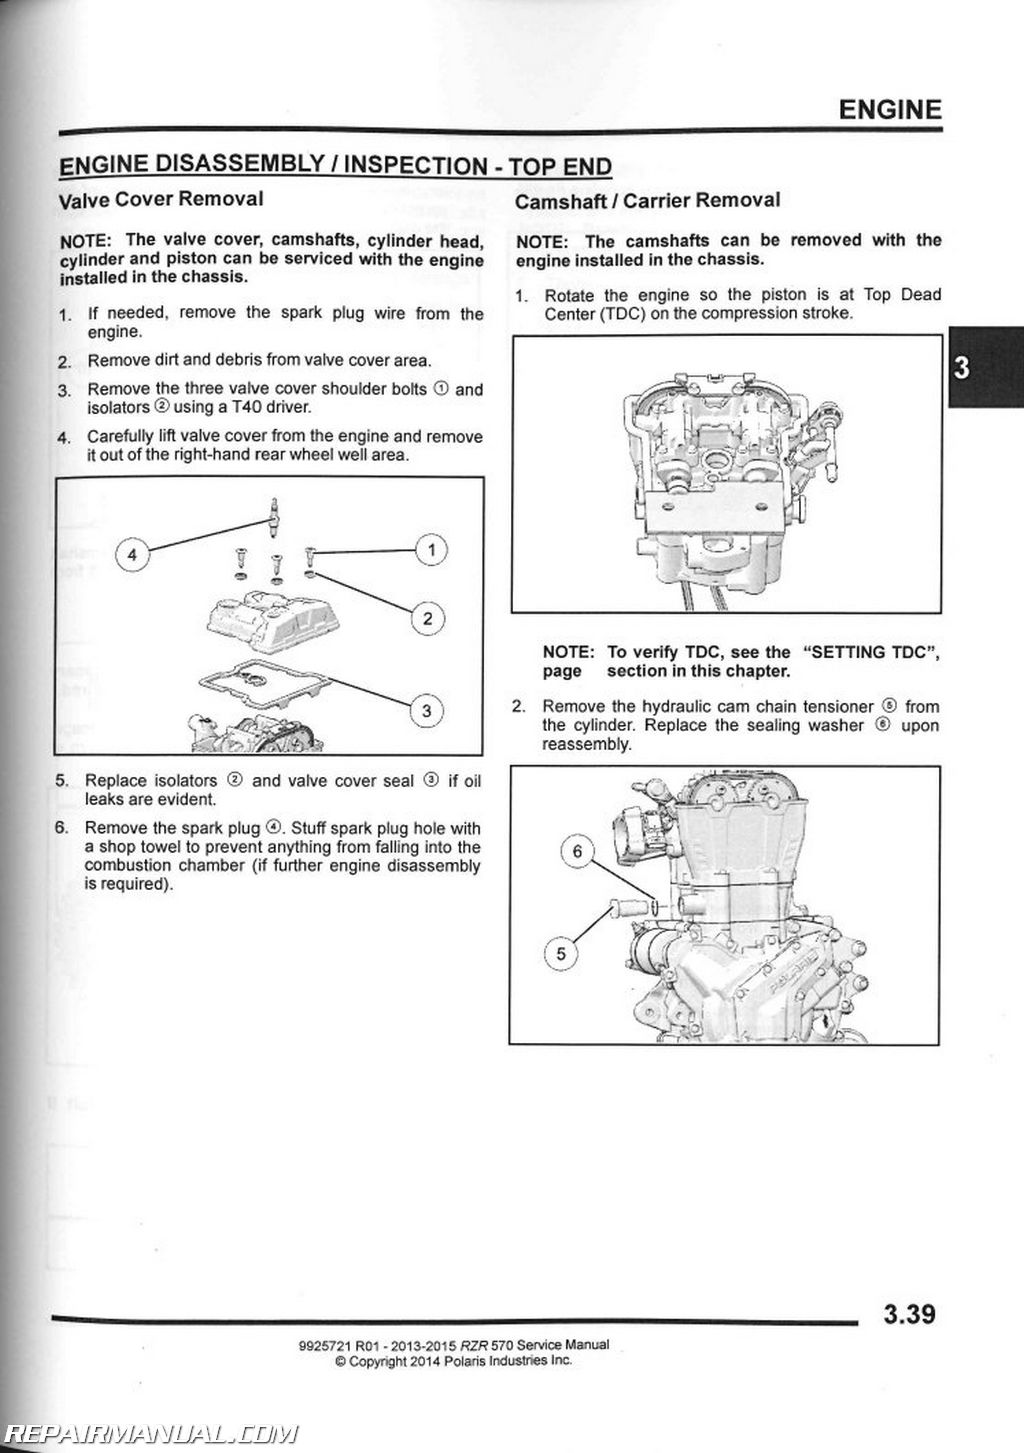 2013-2014 polaris rzr 570 service manual